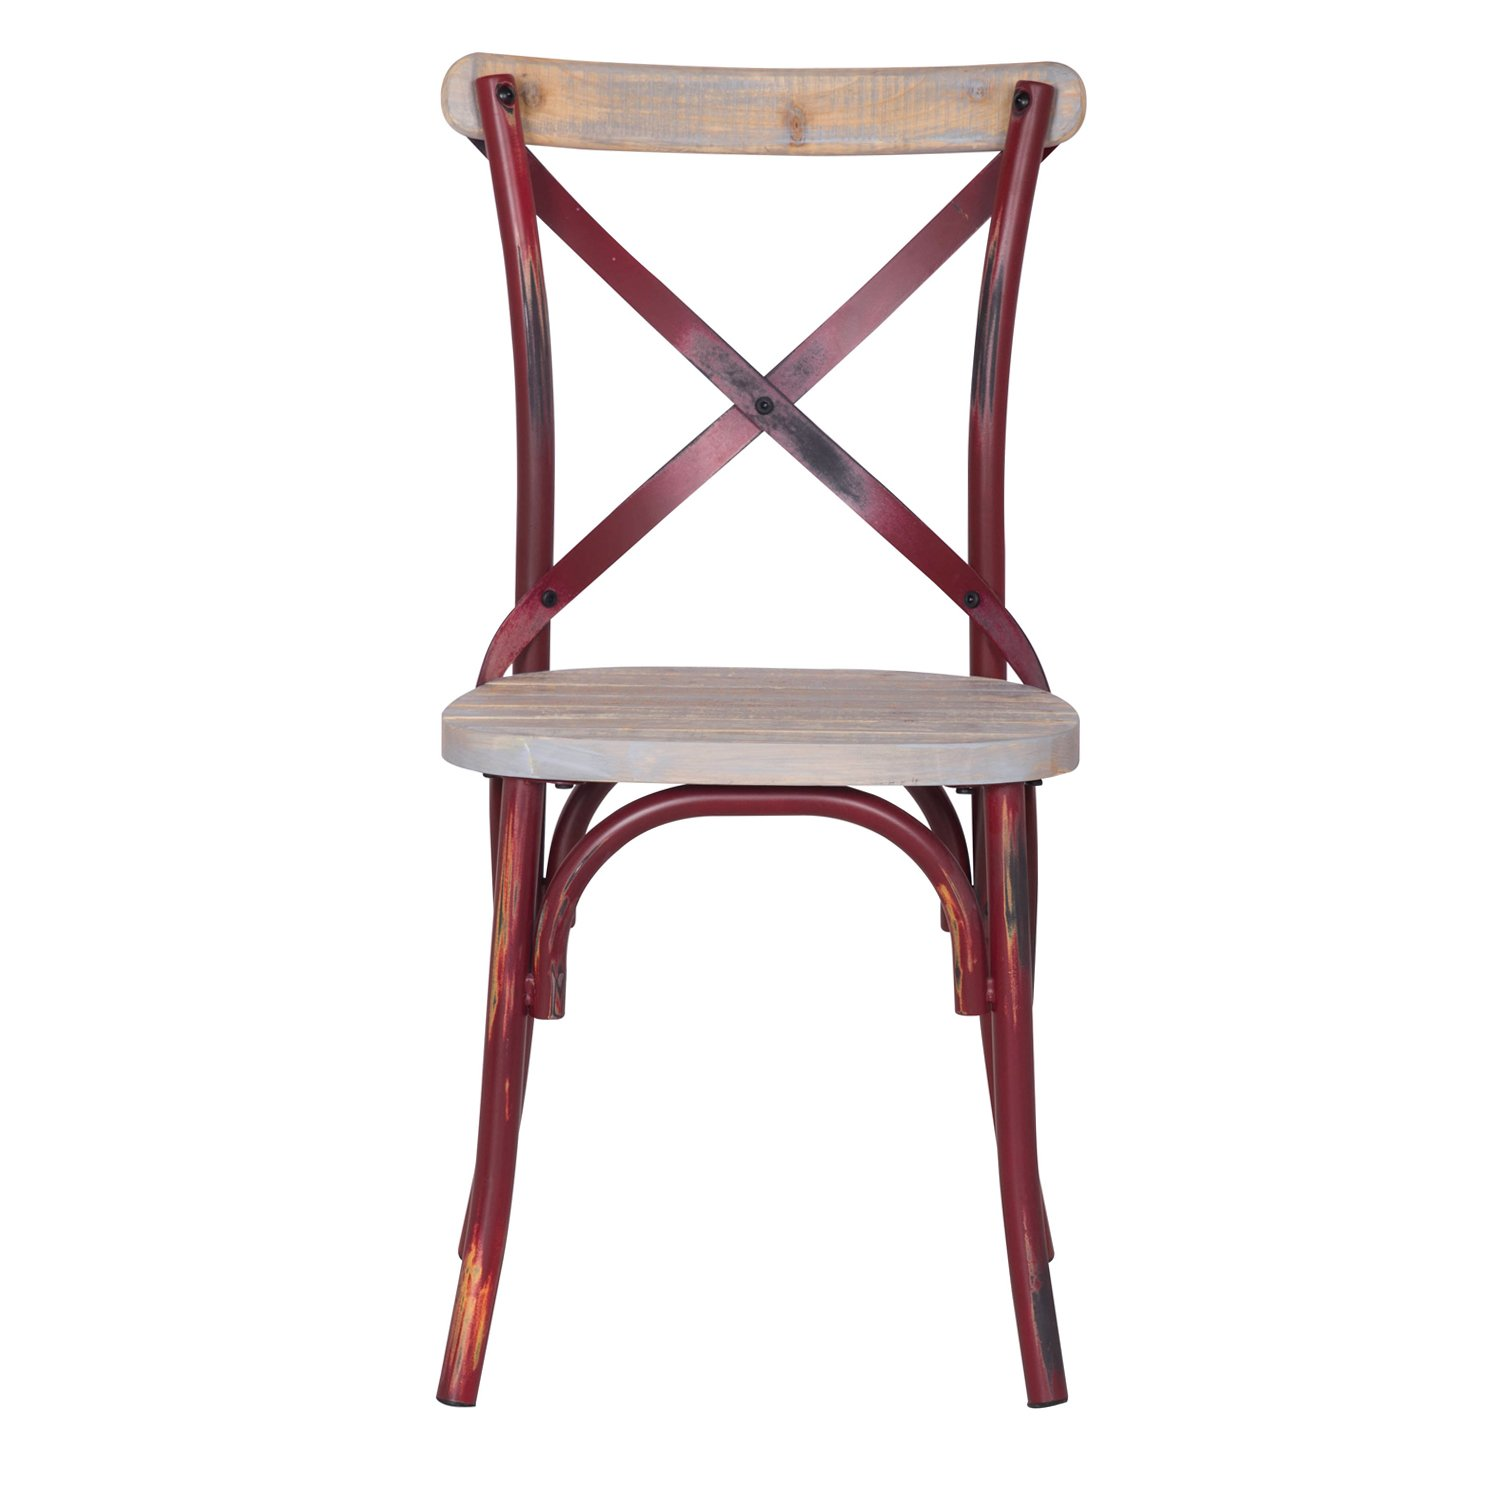 Adeco Metal Chair with Cross Style Back, Solid Elm Wood Dining Side Chair, Red